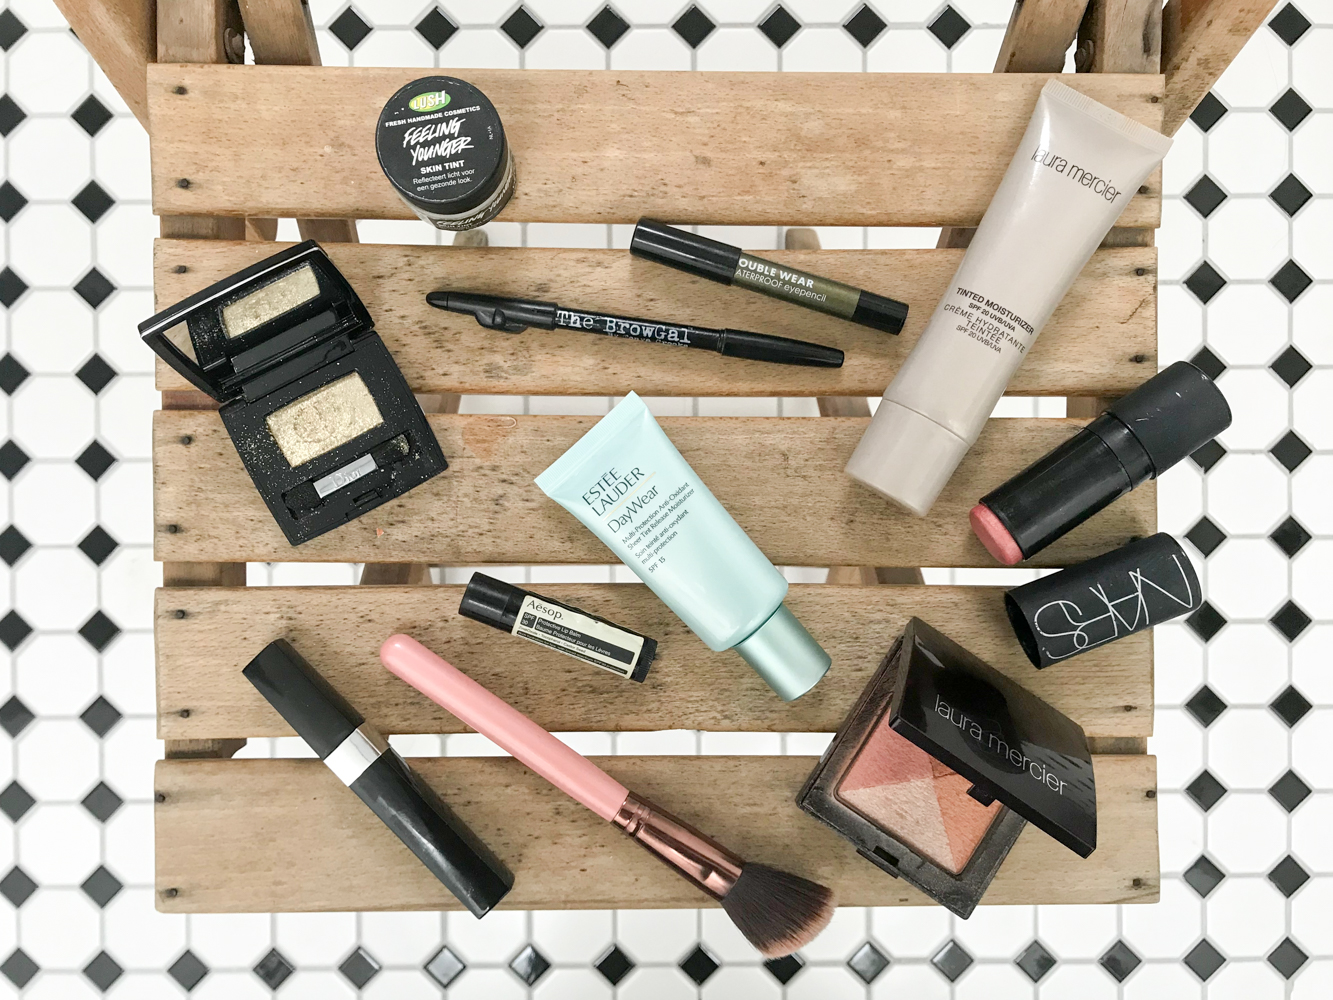 skincare and make-up products I like to use